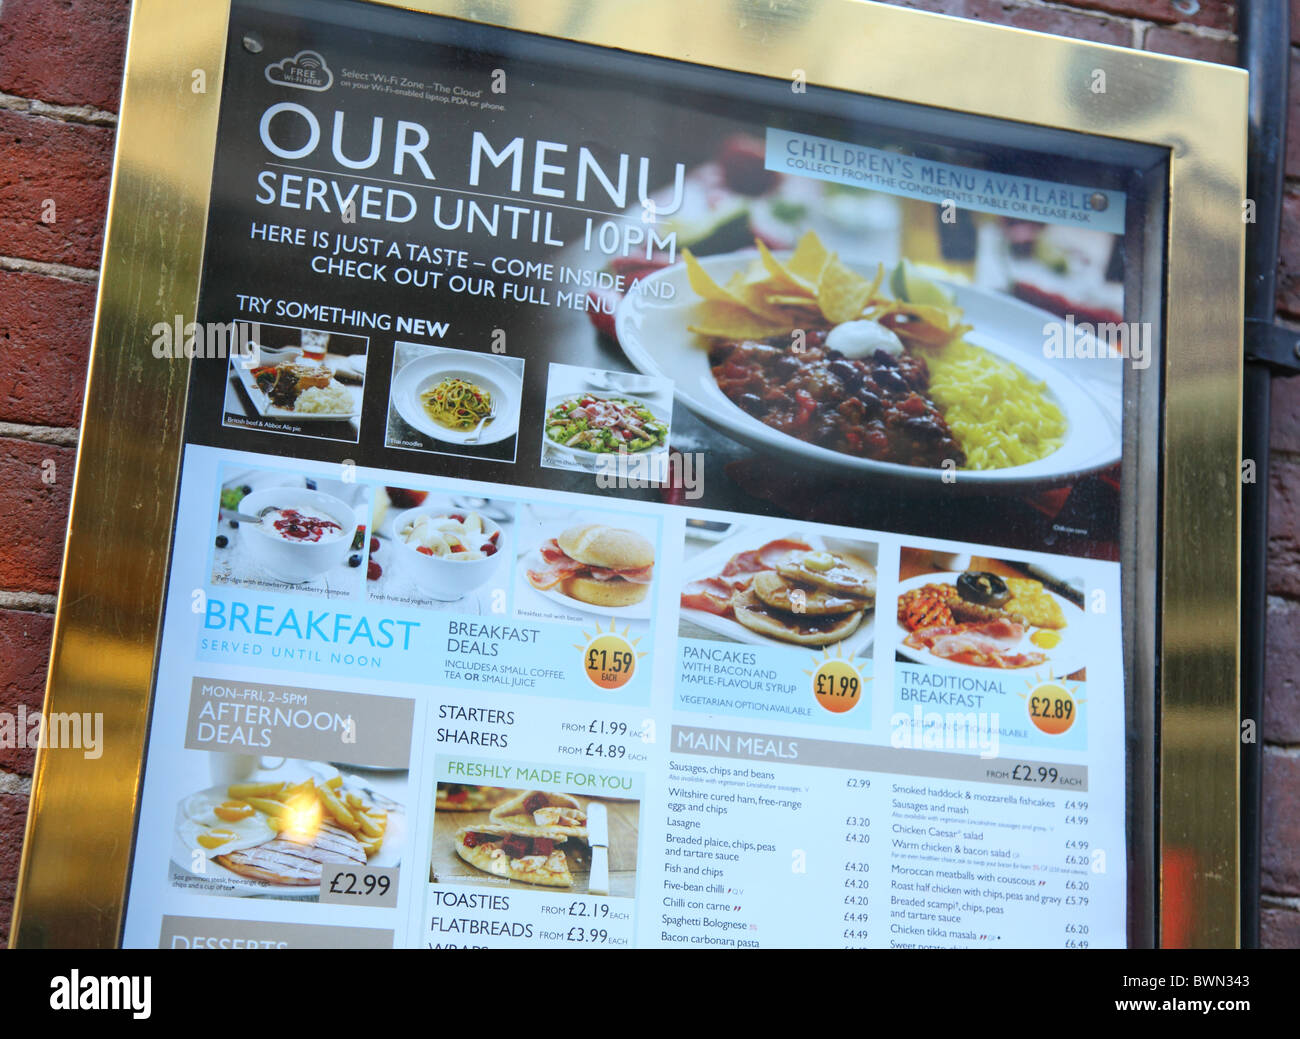 A Menu Outside J D Wetherspoon Bar In UK City